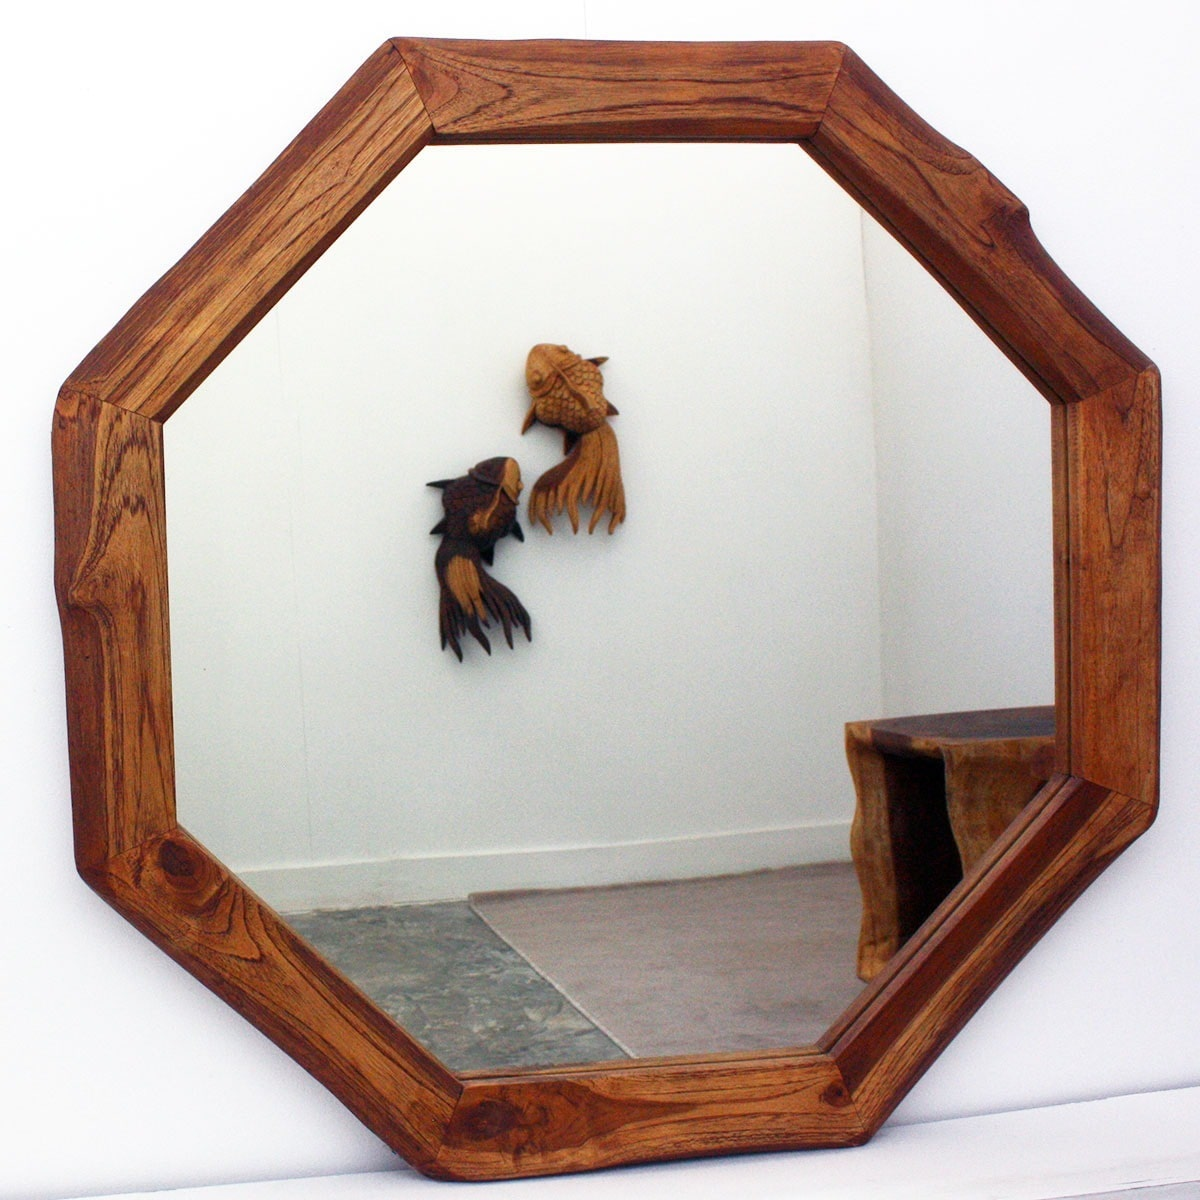 Haussmann Handcrafted 34-inch Teak Octagon and DIA Oak Oil Mirror  , Handmade in Thailand